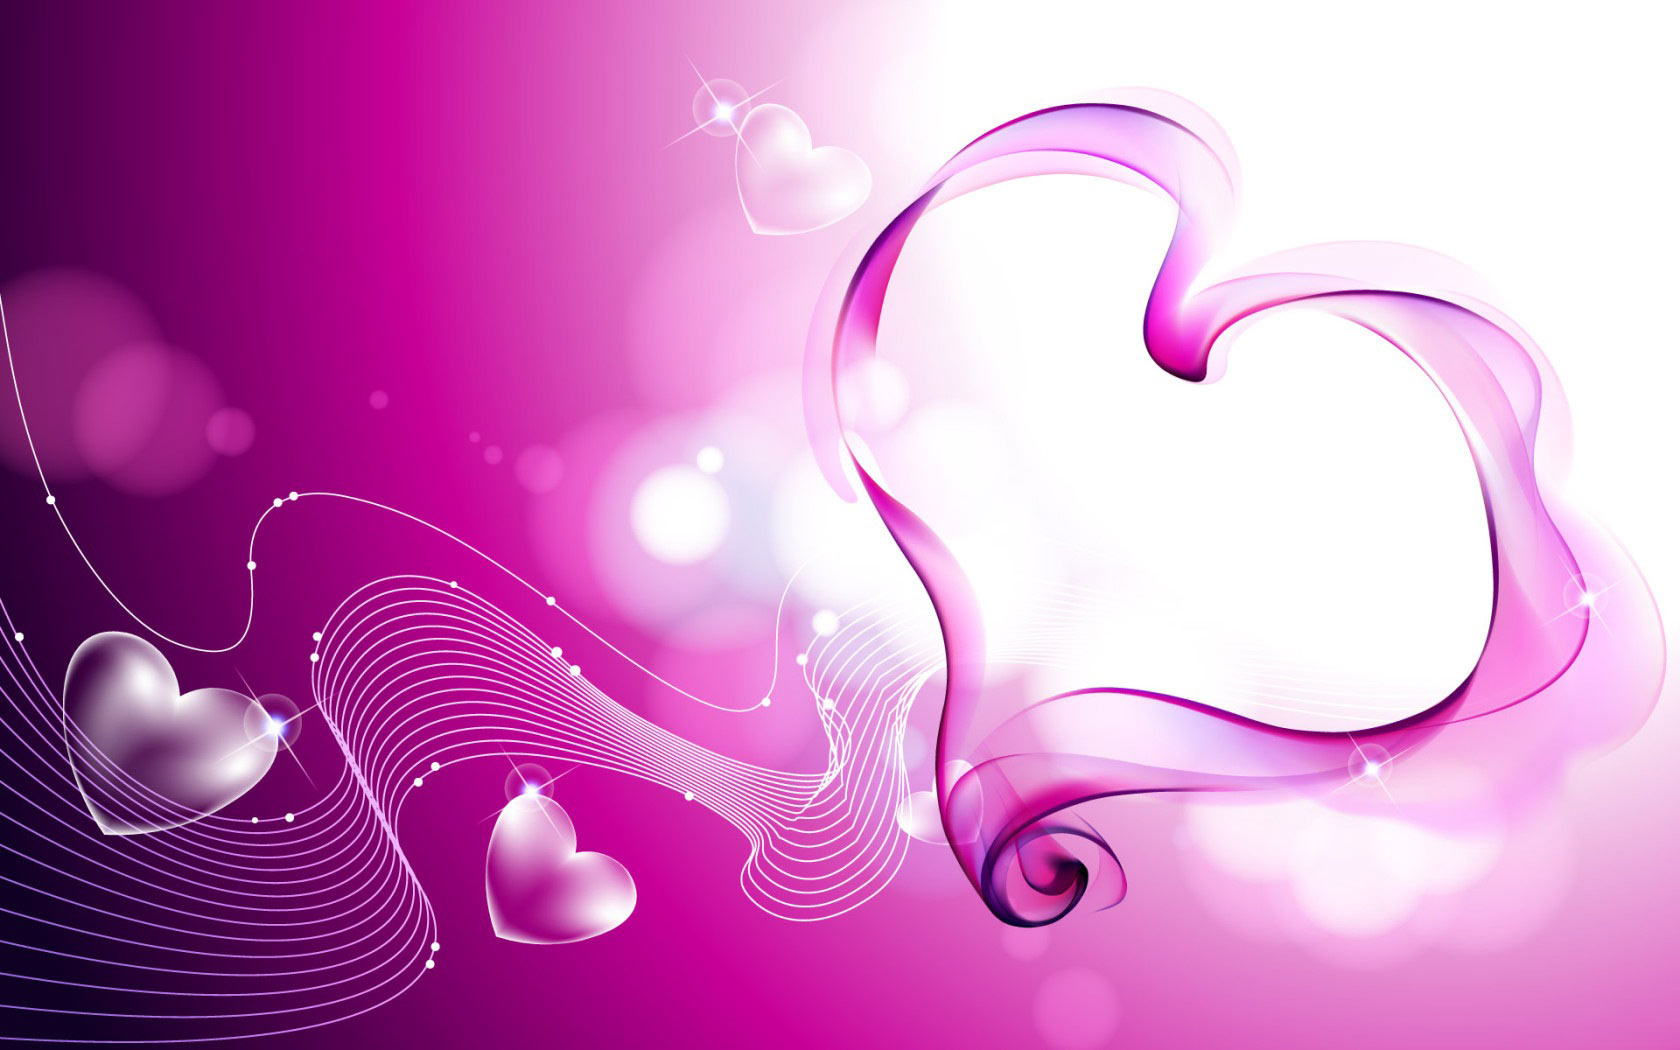 Abstract Lovely Free Wallpaper Of Lovers Wallpaper